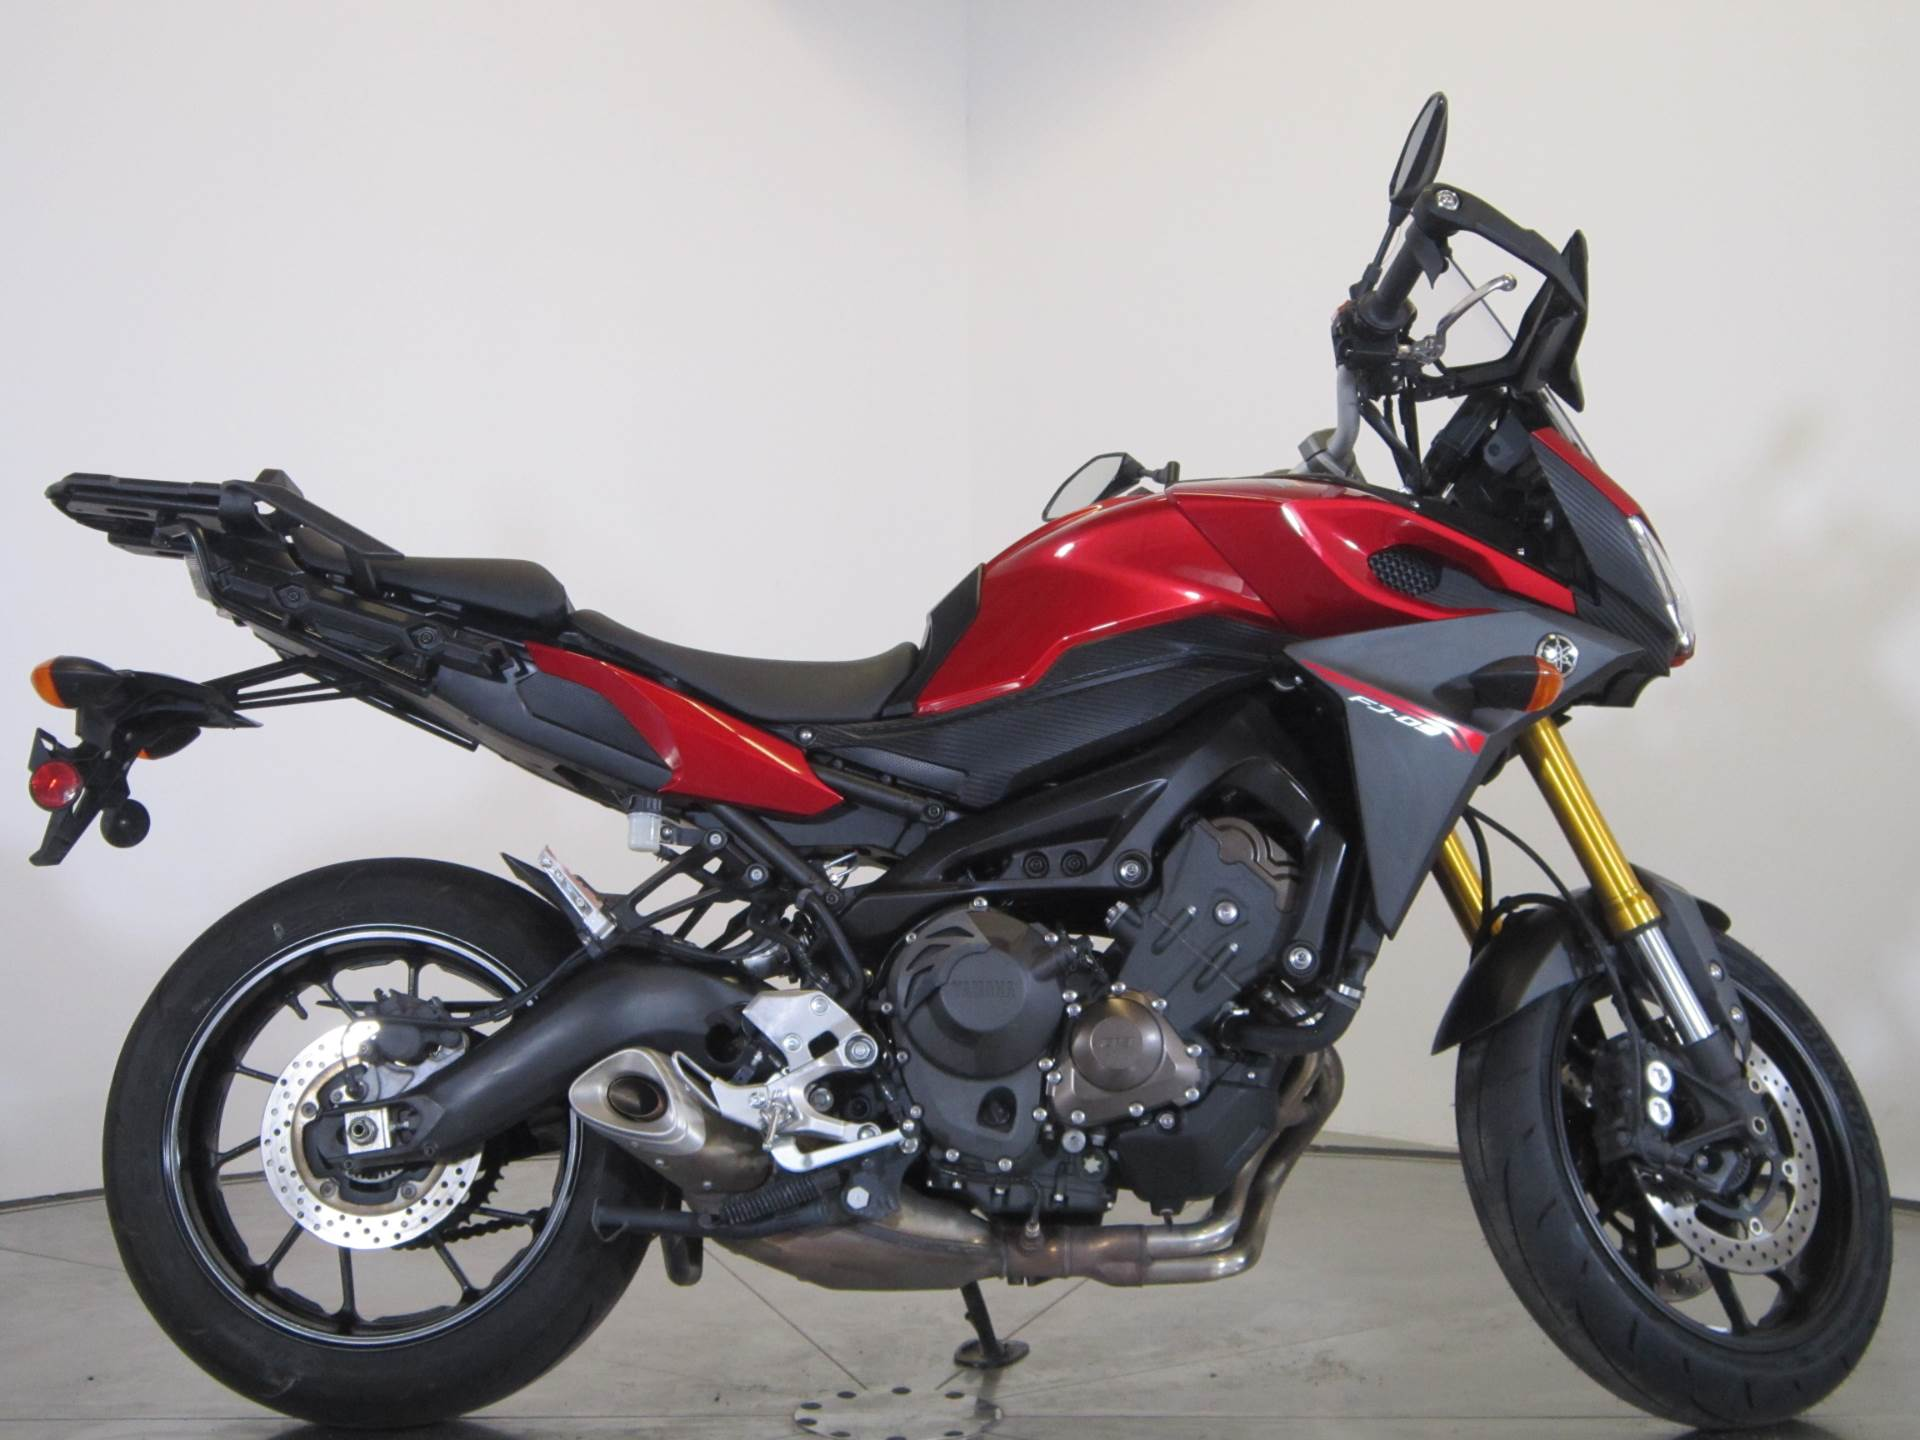 2015 Yamaha FJ-09 for sale 47825